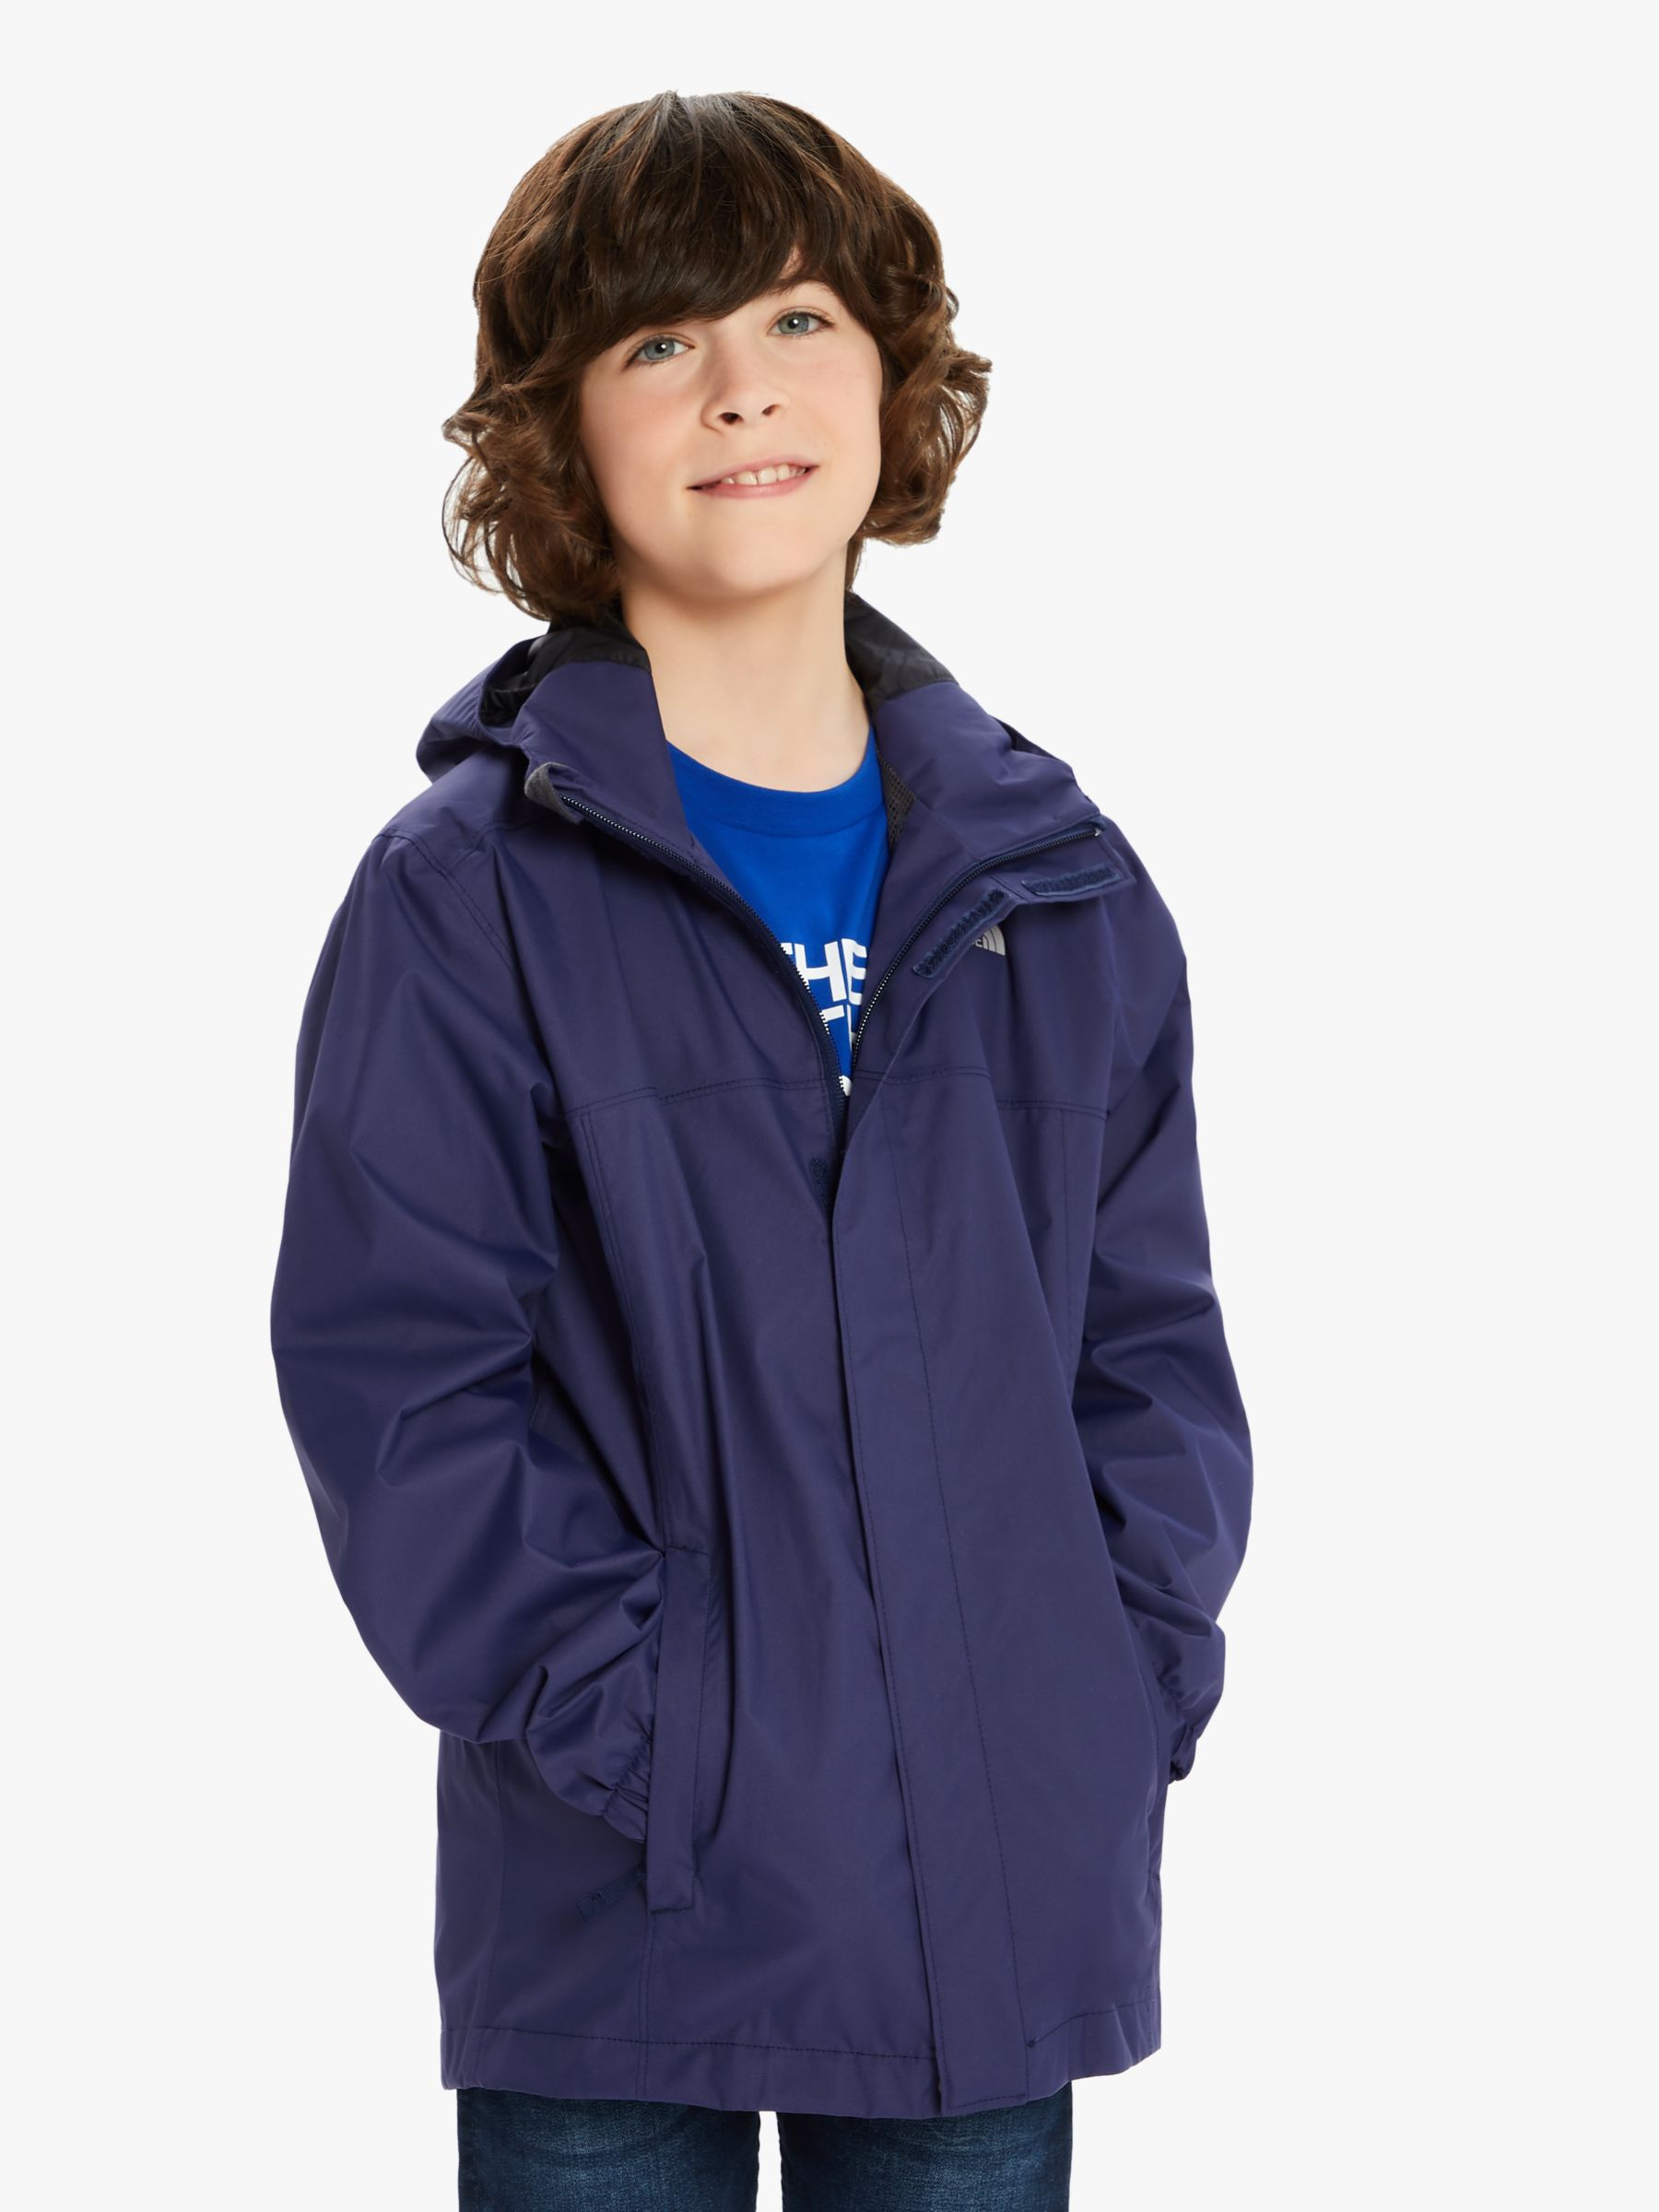 The North Face The North Face Boys' Resolve Reflective Jacket, Montague Blue